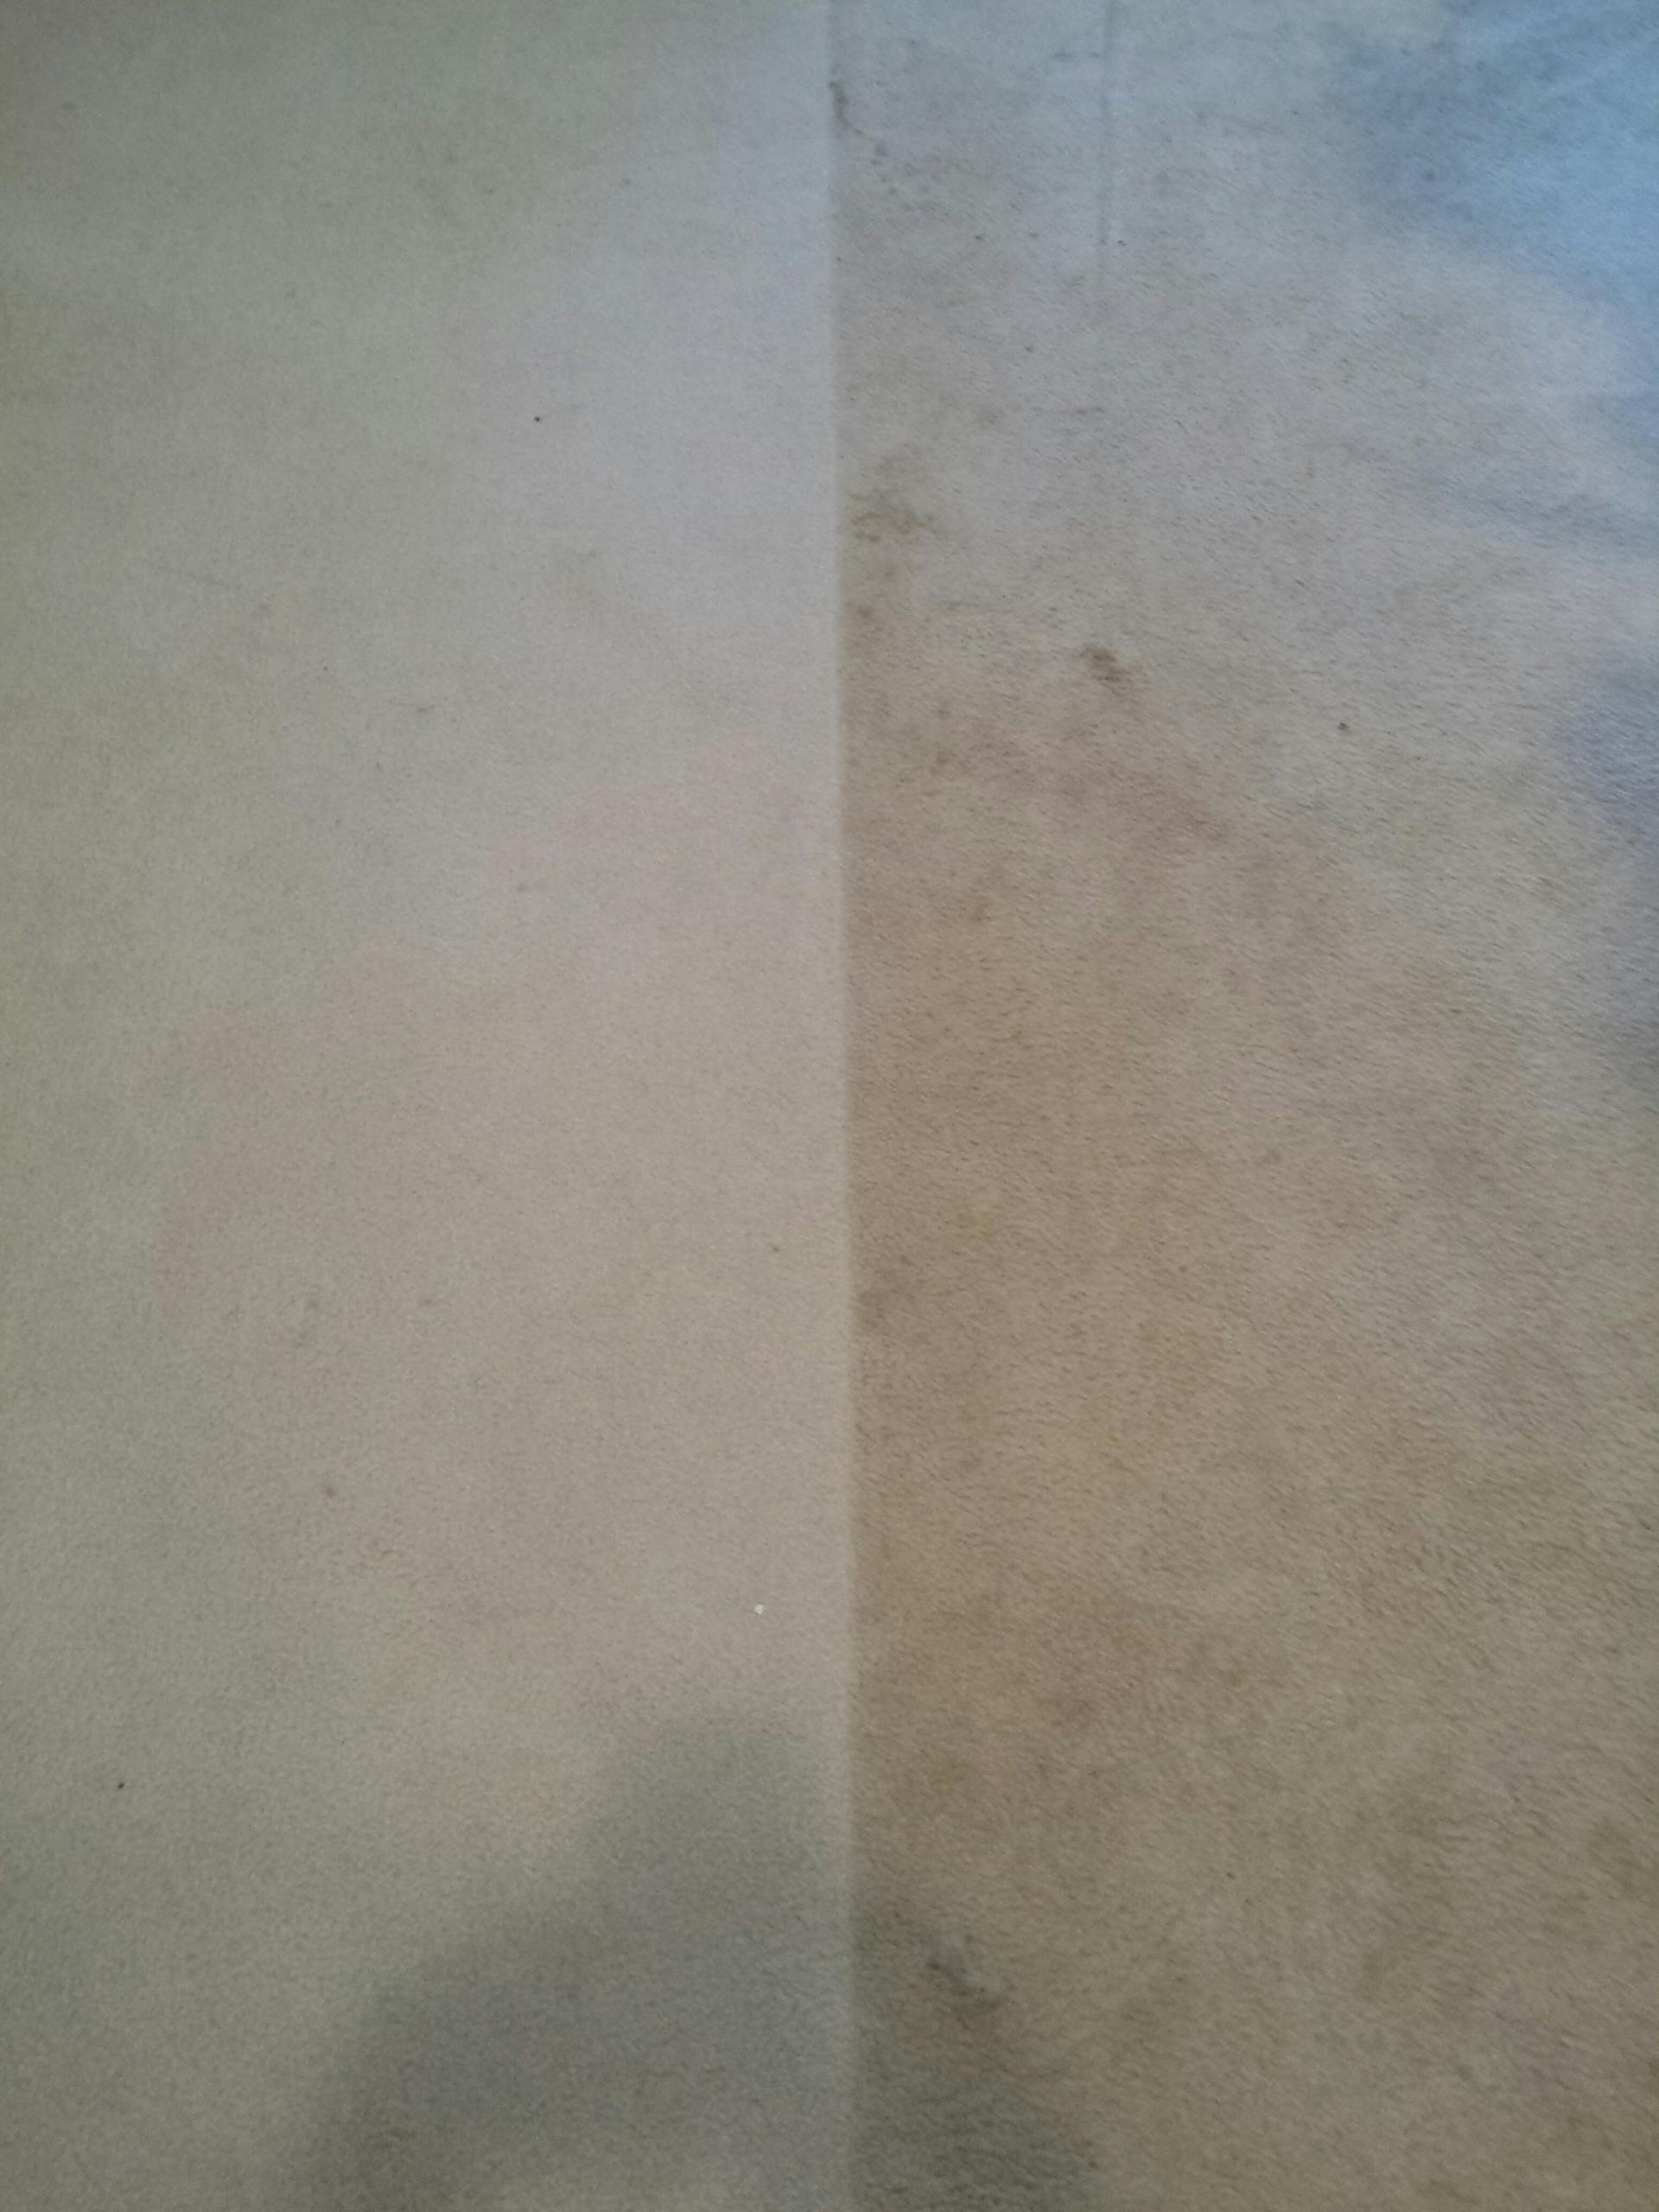 Ashland, VA - Look at the difference between what was cleaned and what wasn't! Now that's a huge difference!